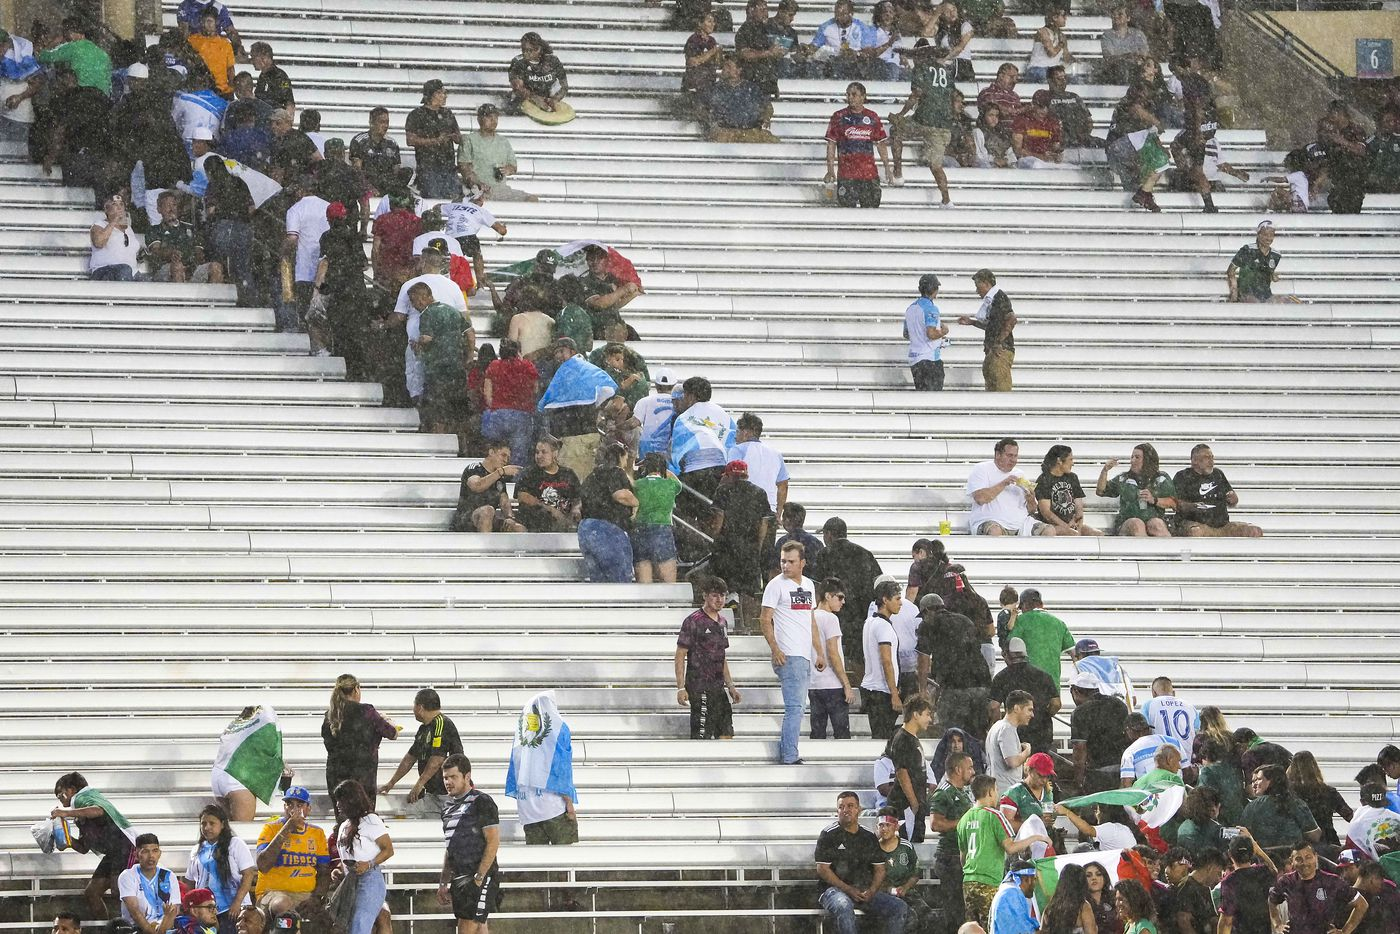 Fans scramble for cover as rain falls on the stadium before a CONCACAF Gold Cup Group A soccer match between the Mexico and the Guatemala at the Cotton Bowl on Wednesday, July 14, 2021, in Dallas. The start of the game was delayed due to weather.